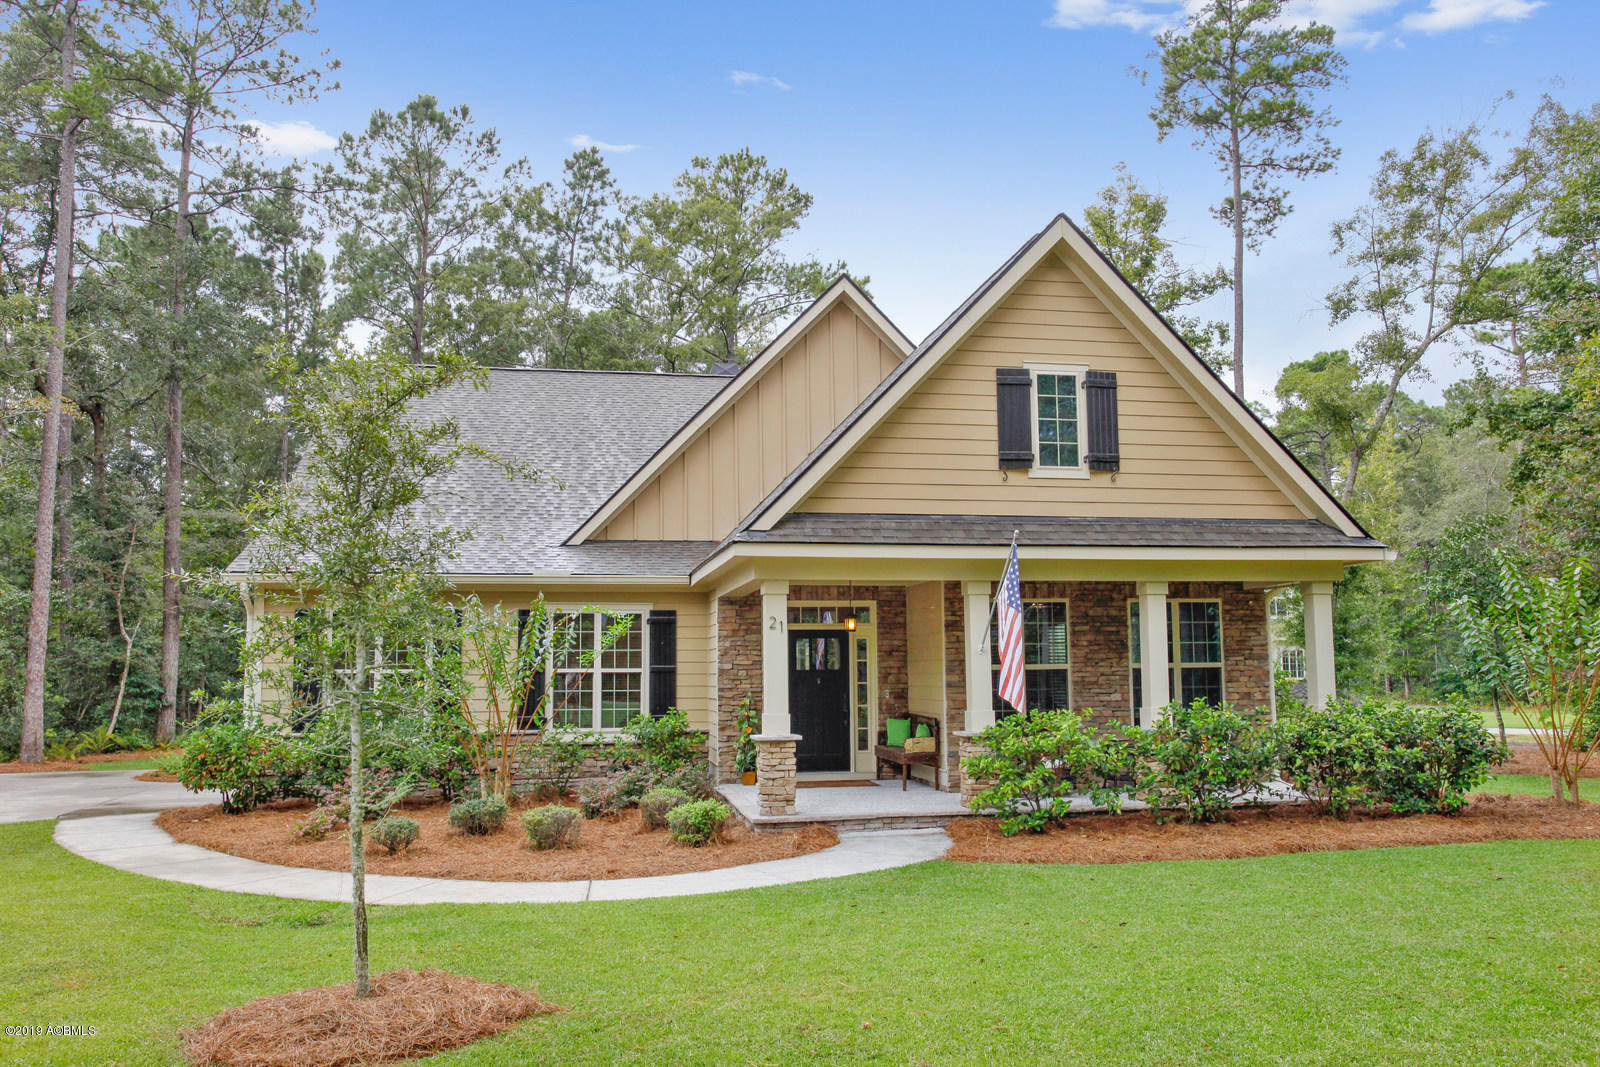 Photo of 21 Dovetree Lane, Bluffton, SC 29910